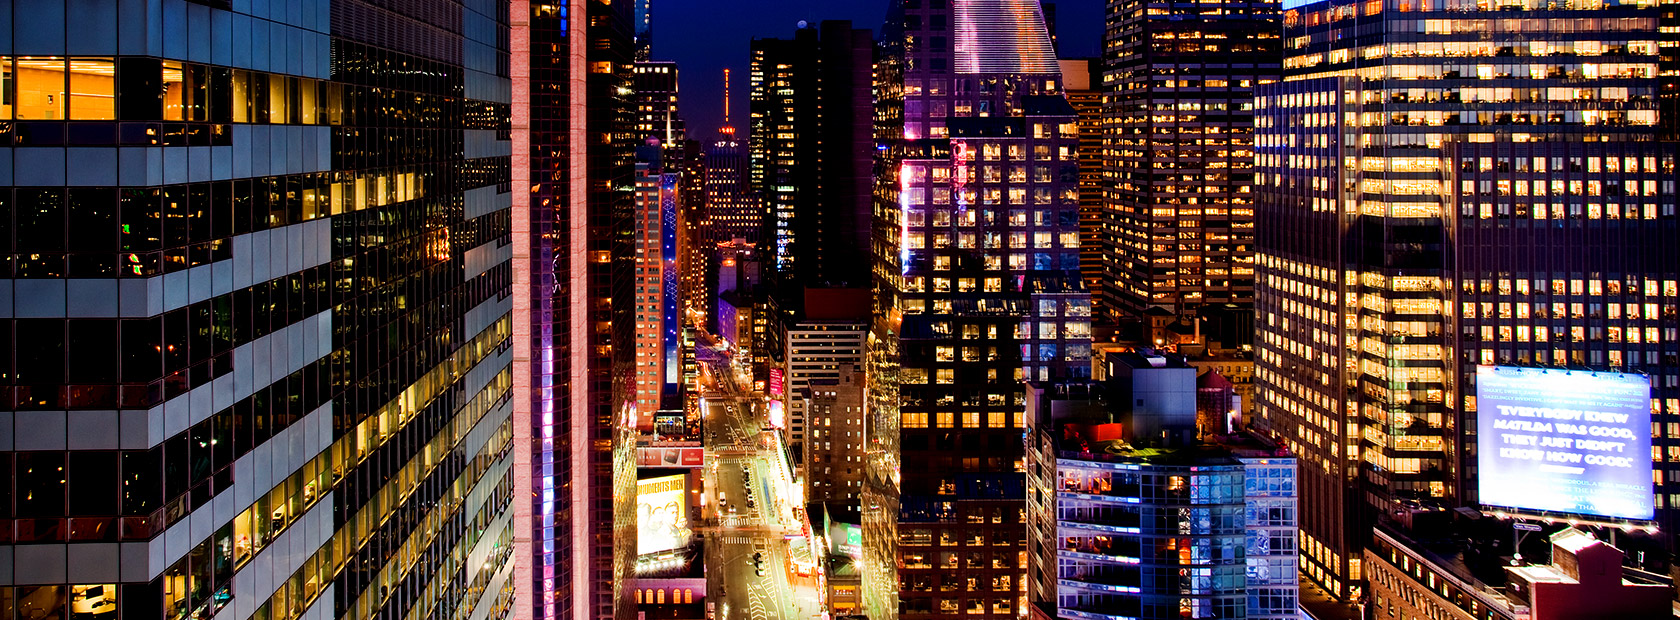 W-Hotels_Article_1680x620_On-the-Ground-NYC